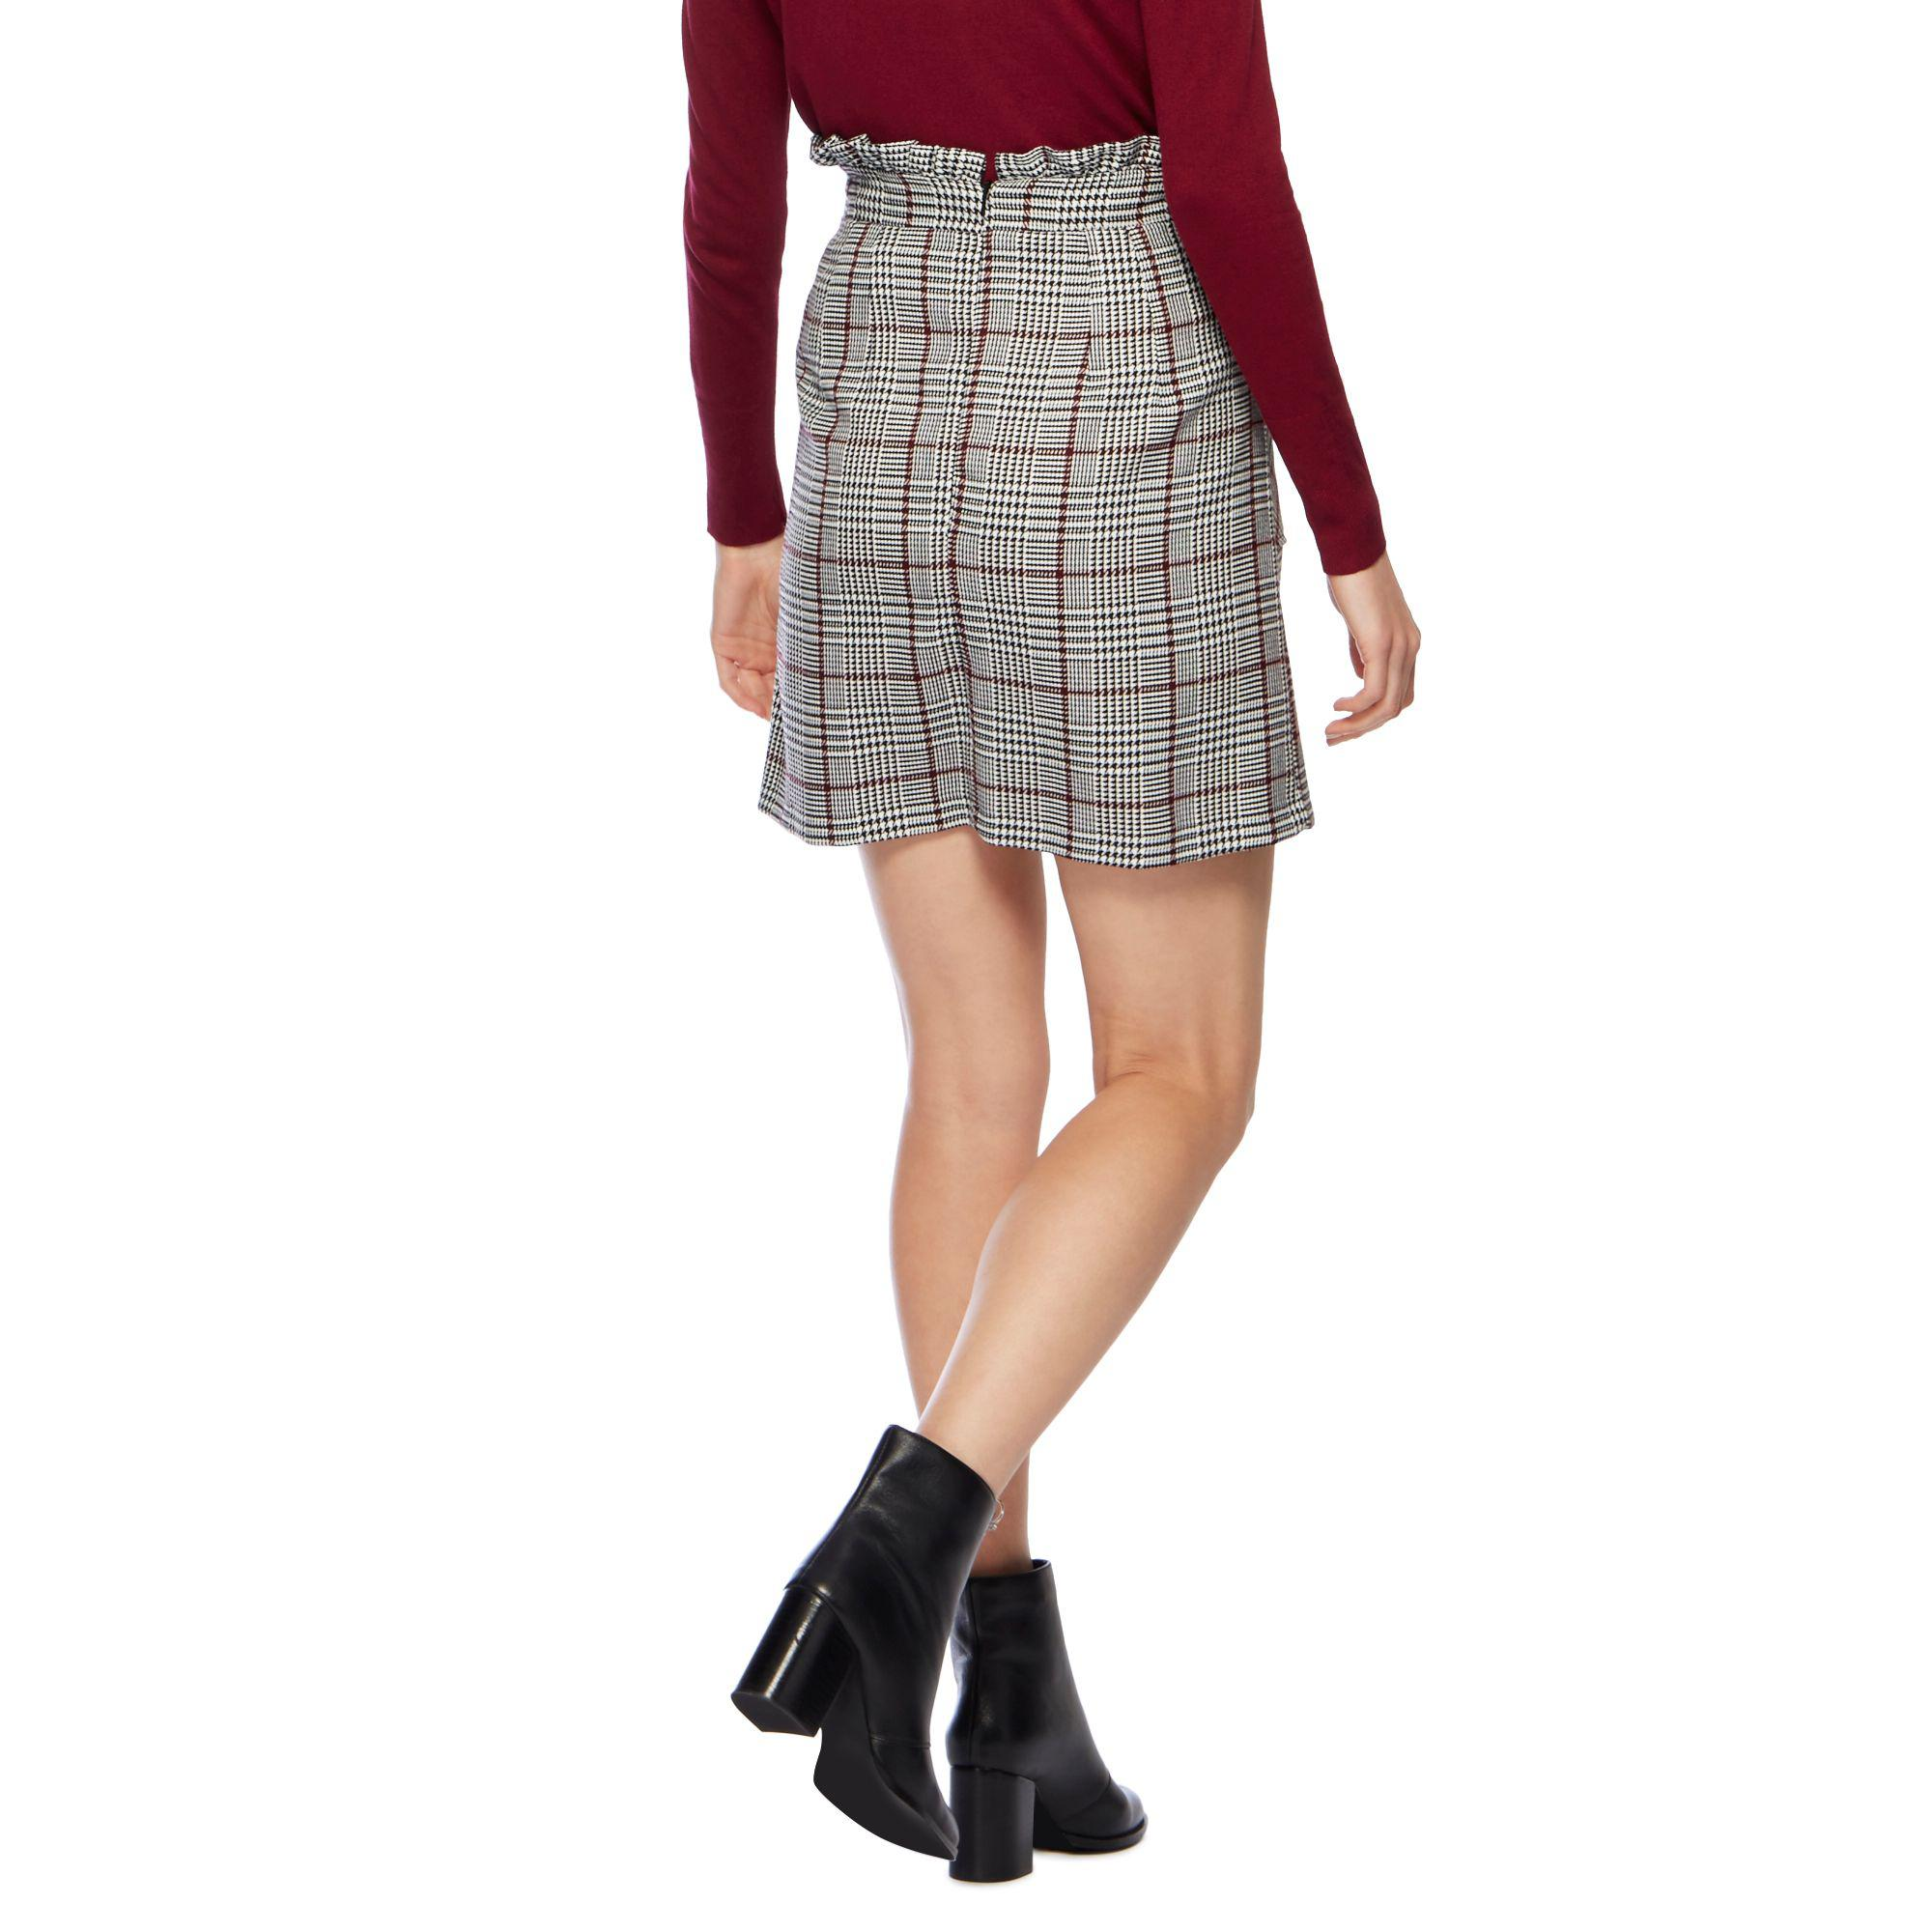 506a47f81 Red Herring Multi Coloured Check Print Skirt - Lyst